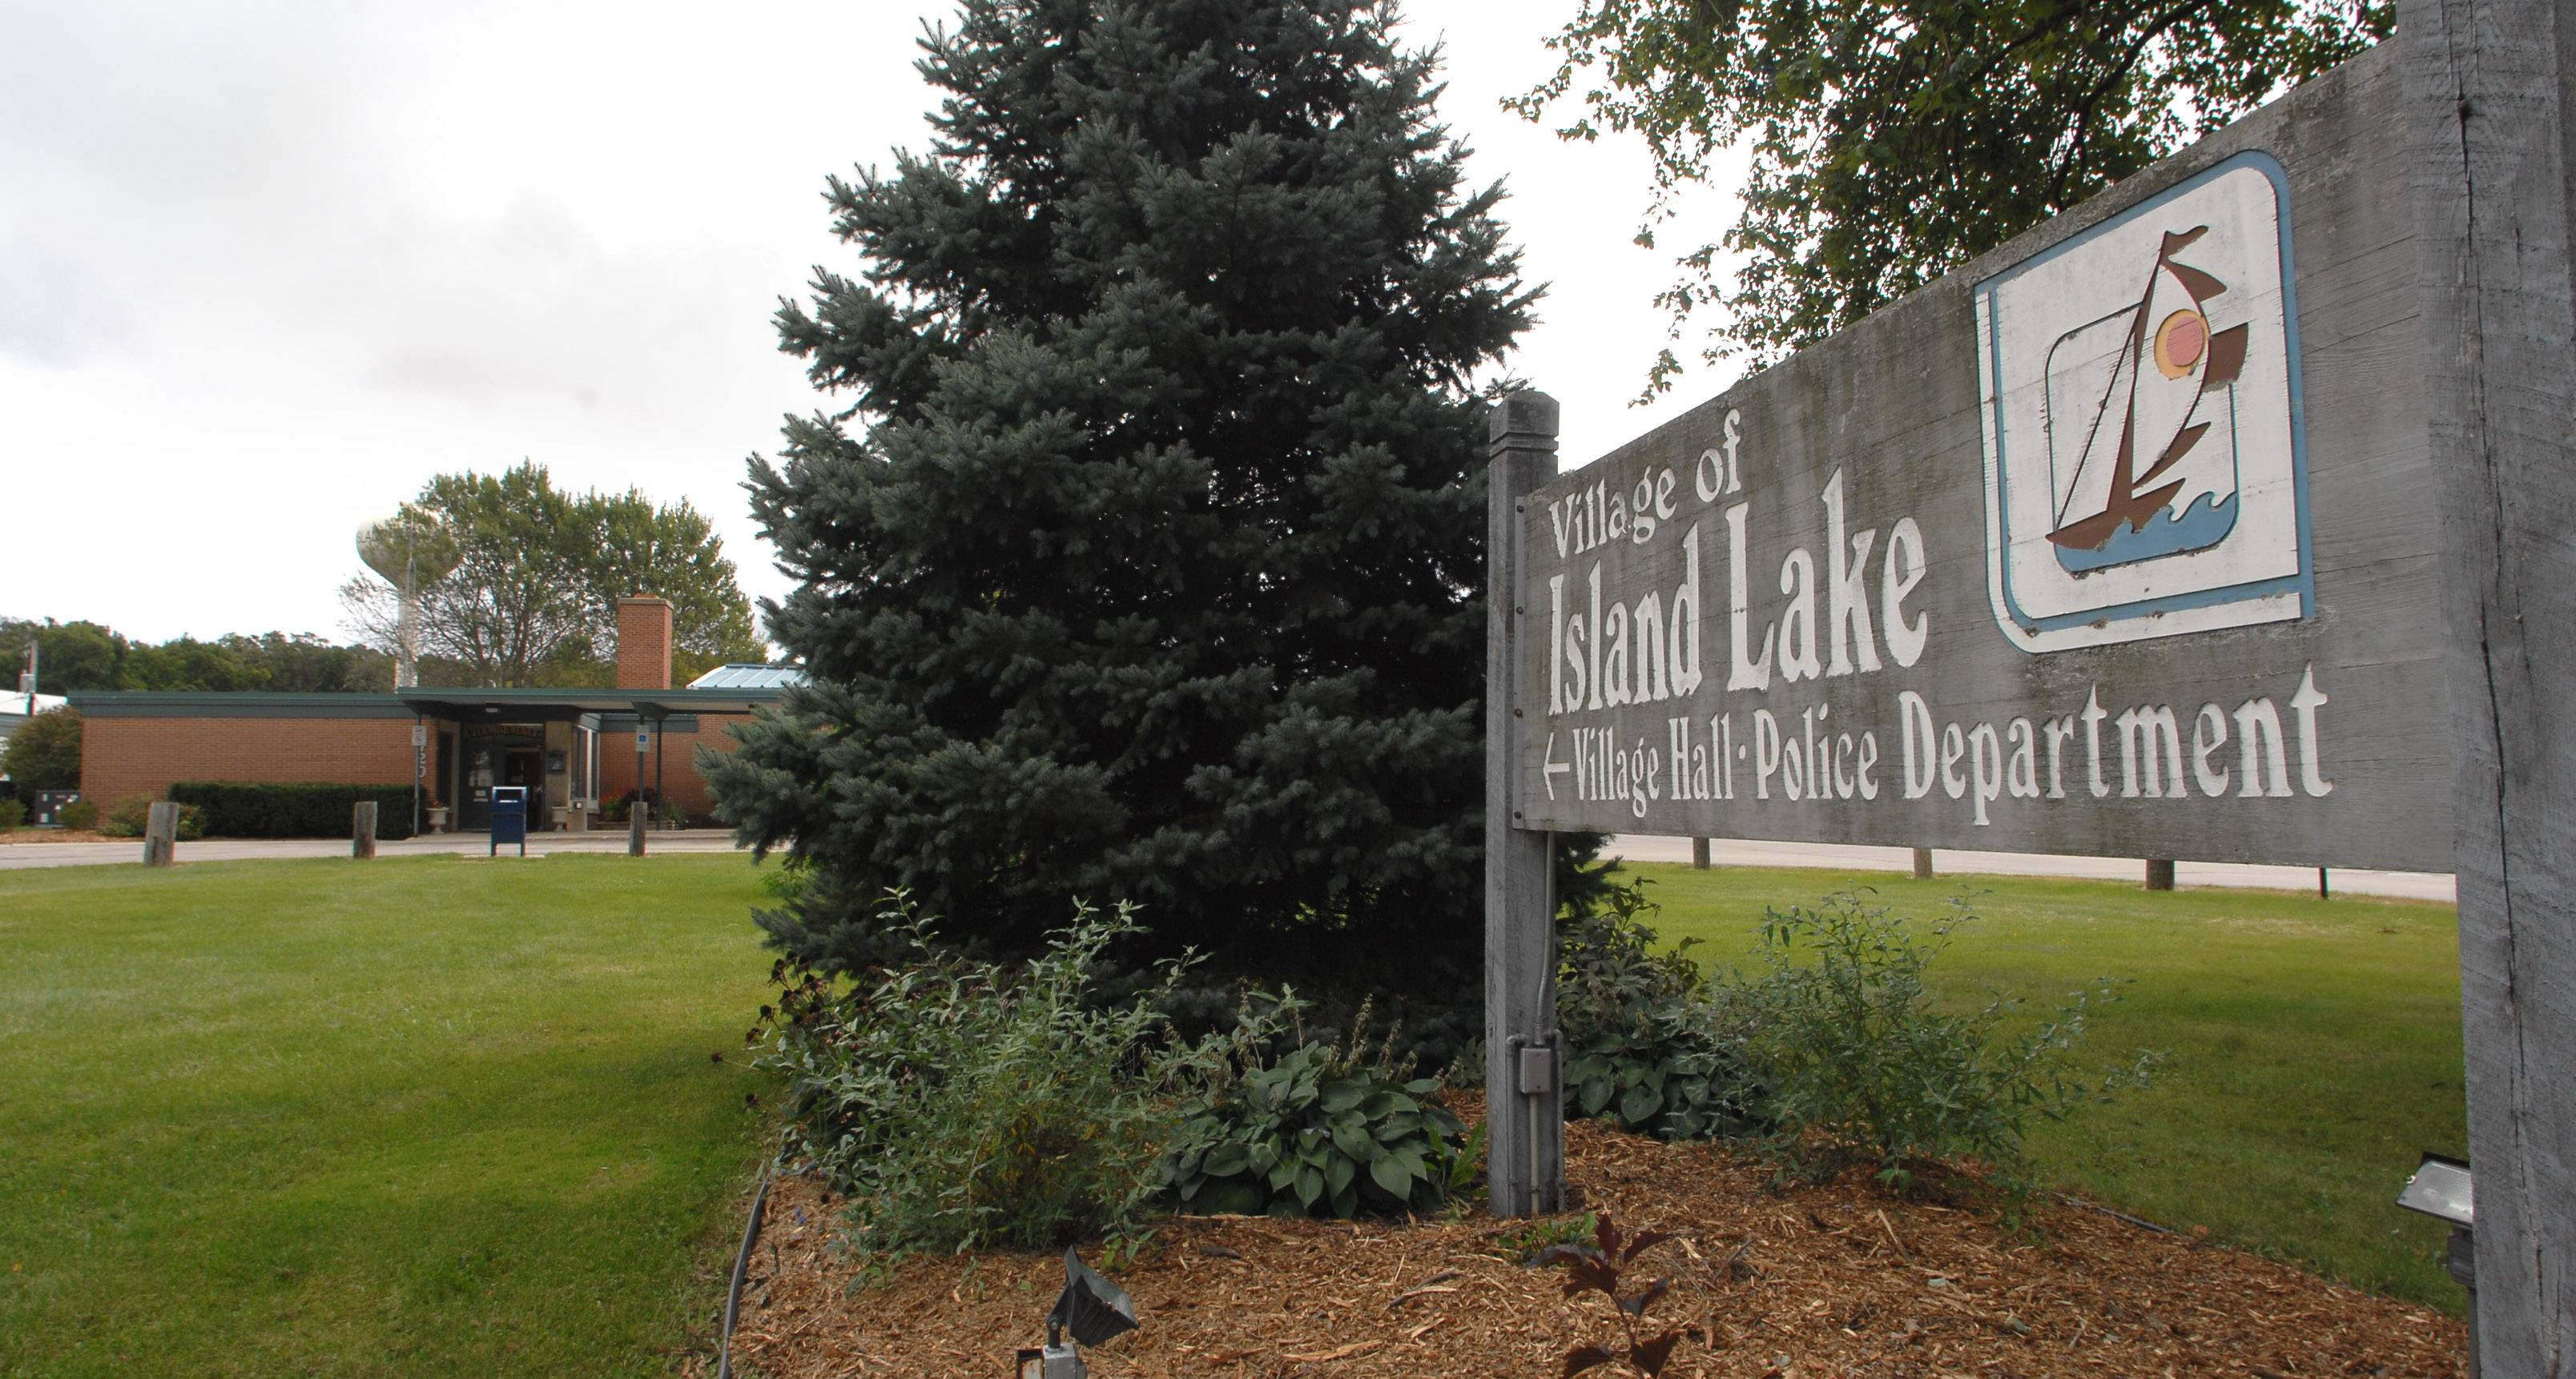 Island Lake officials still trying to resolve issue with sergeants' promotions